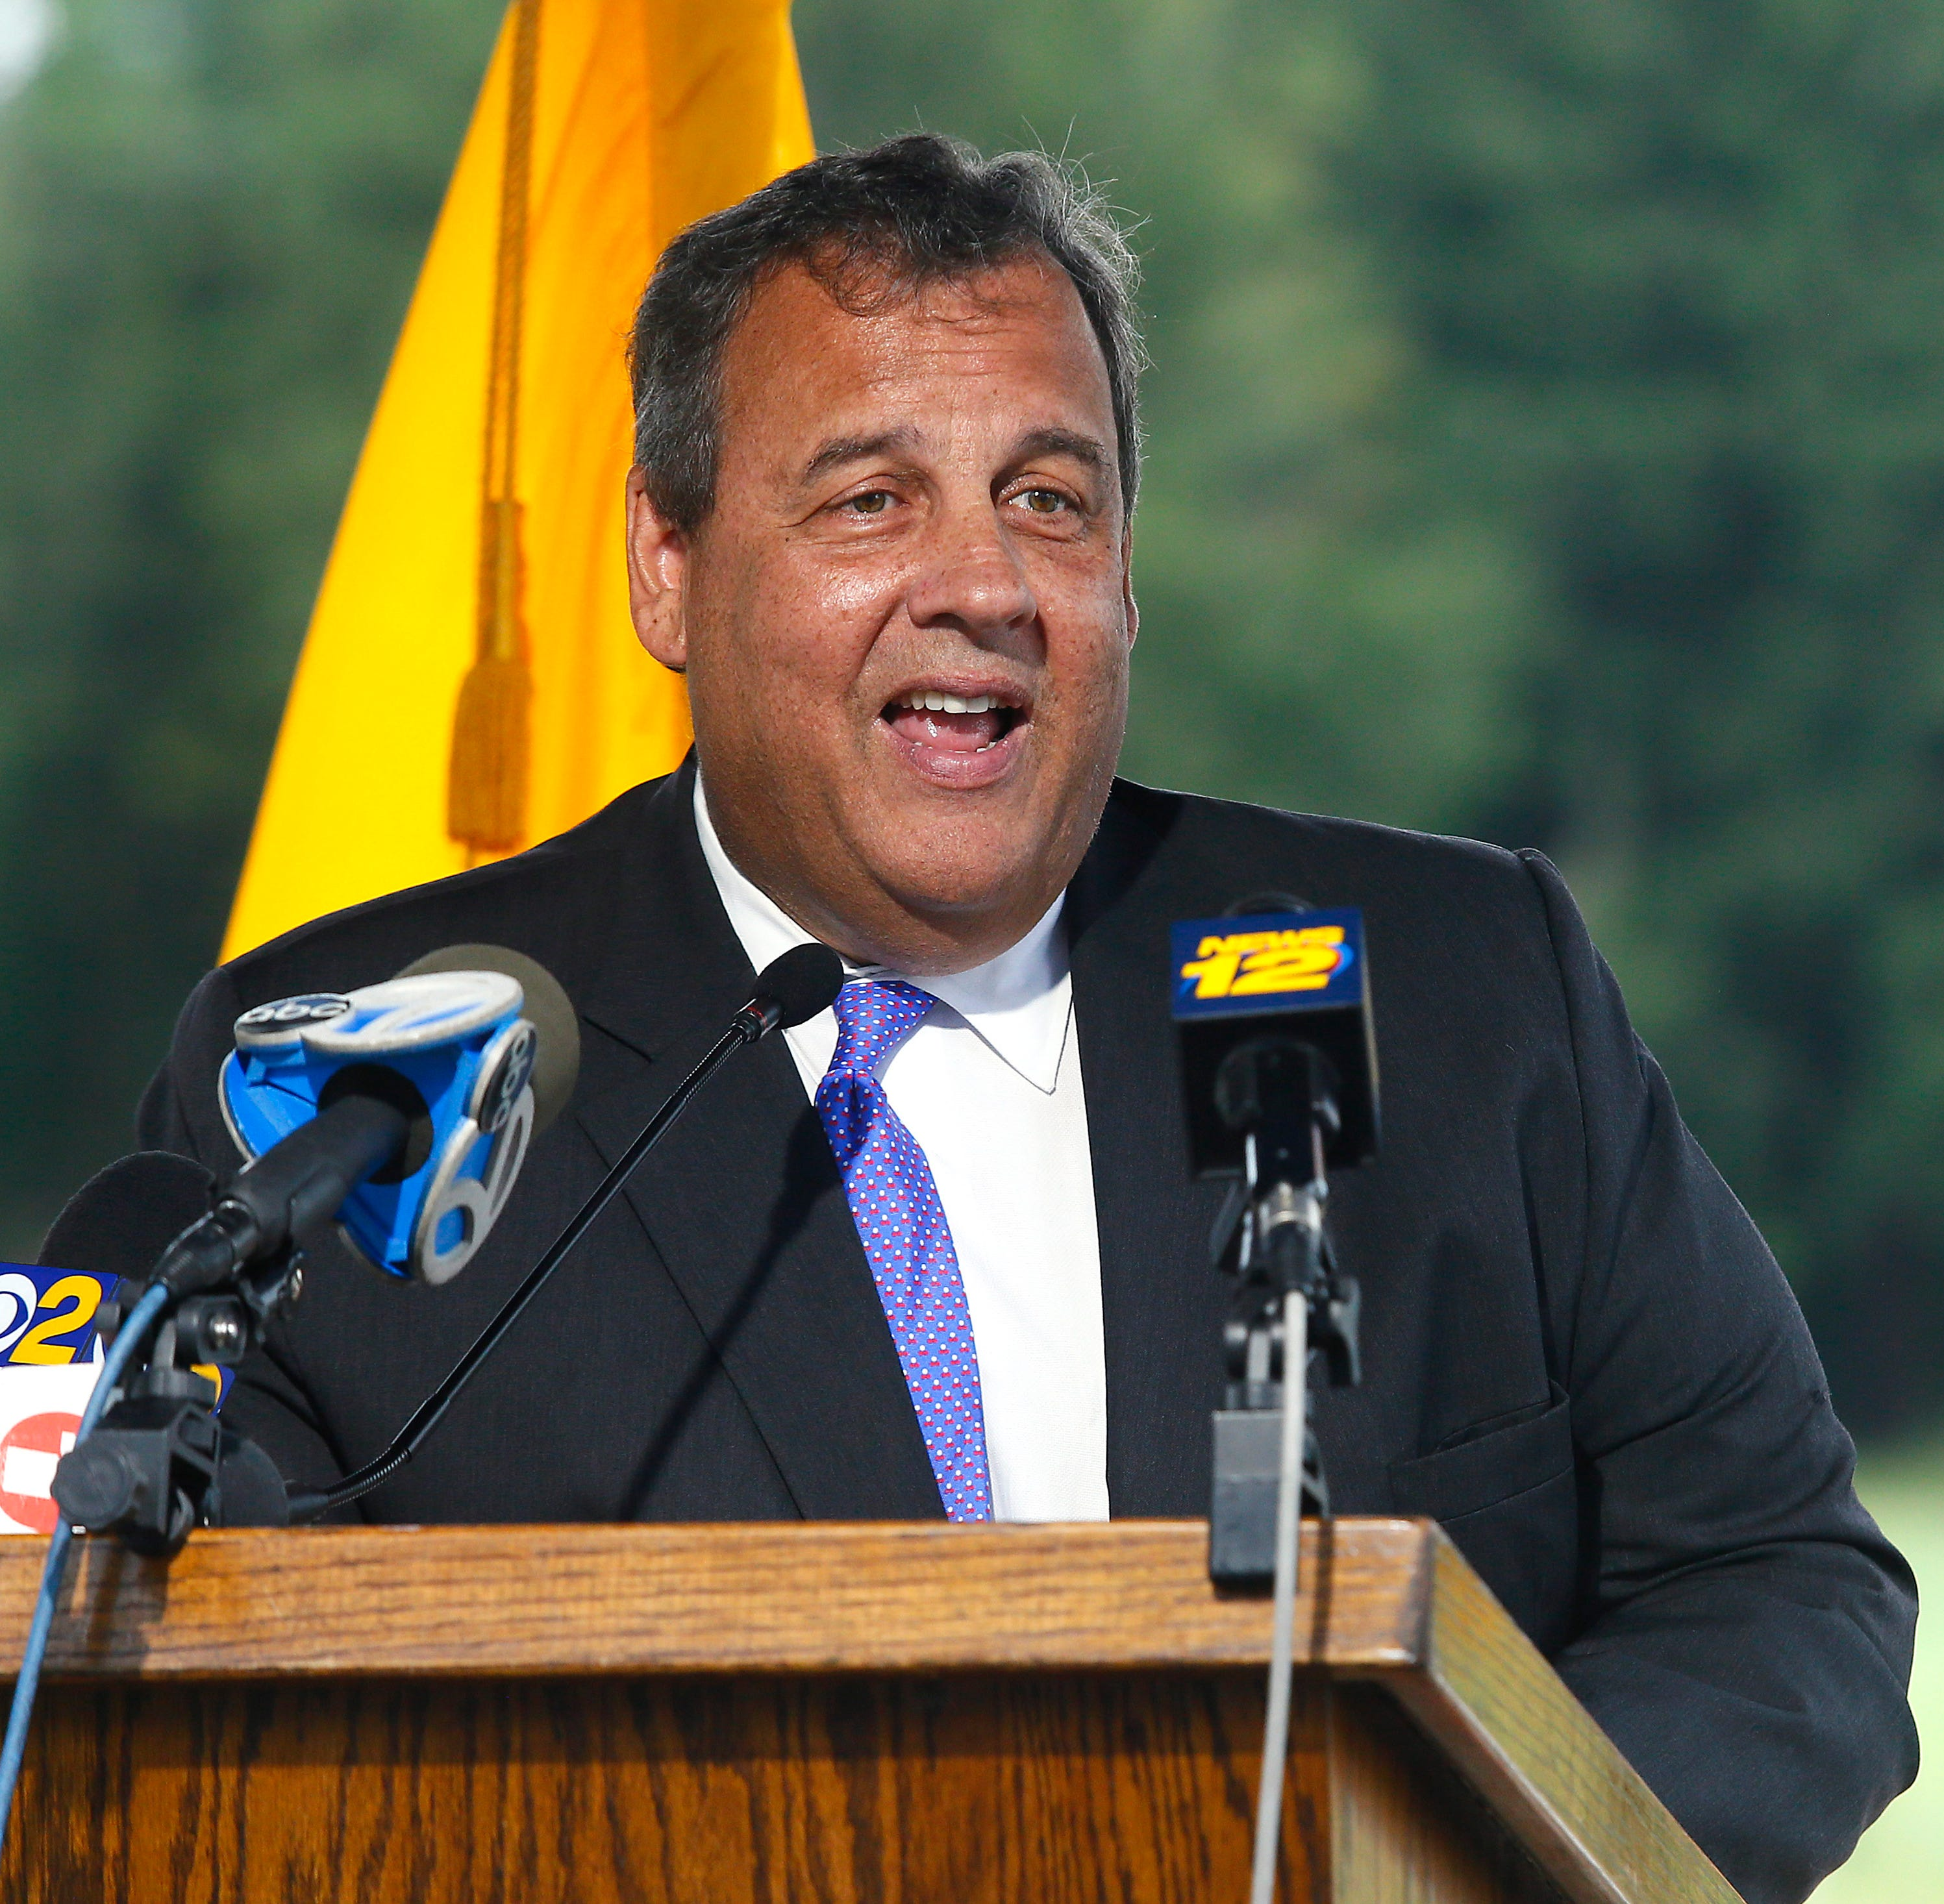 Chris Christie 'could'a been a contender"